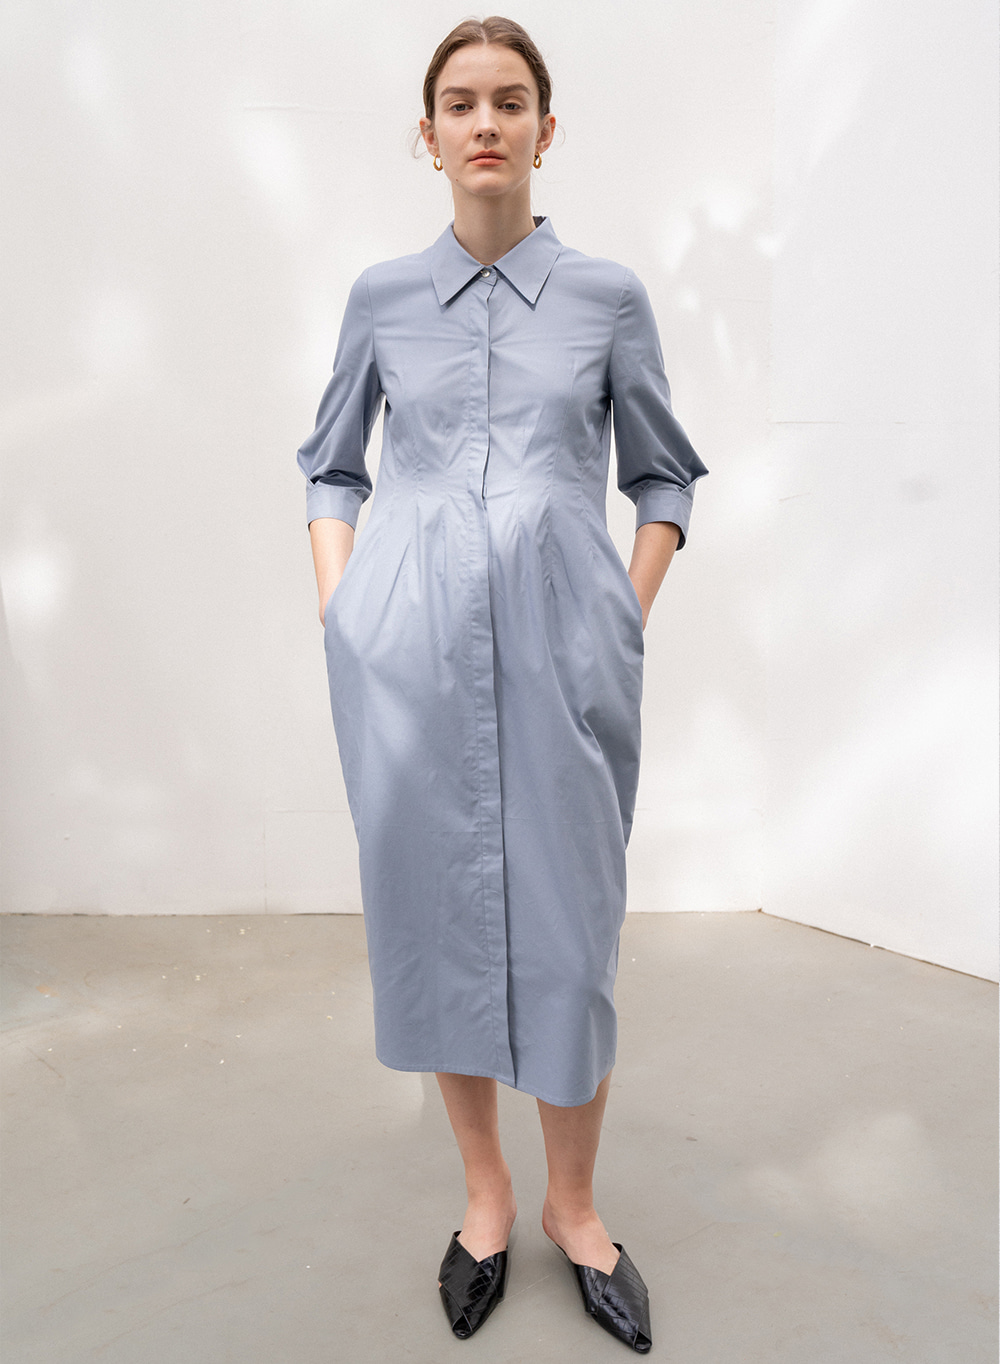 [ESSENTIAL] SILHOUETTE SHIRTS DRESS BLUE